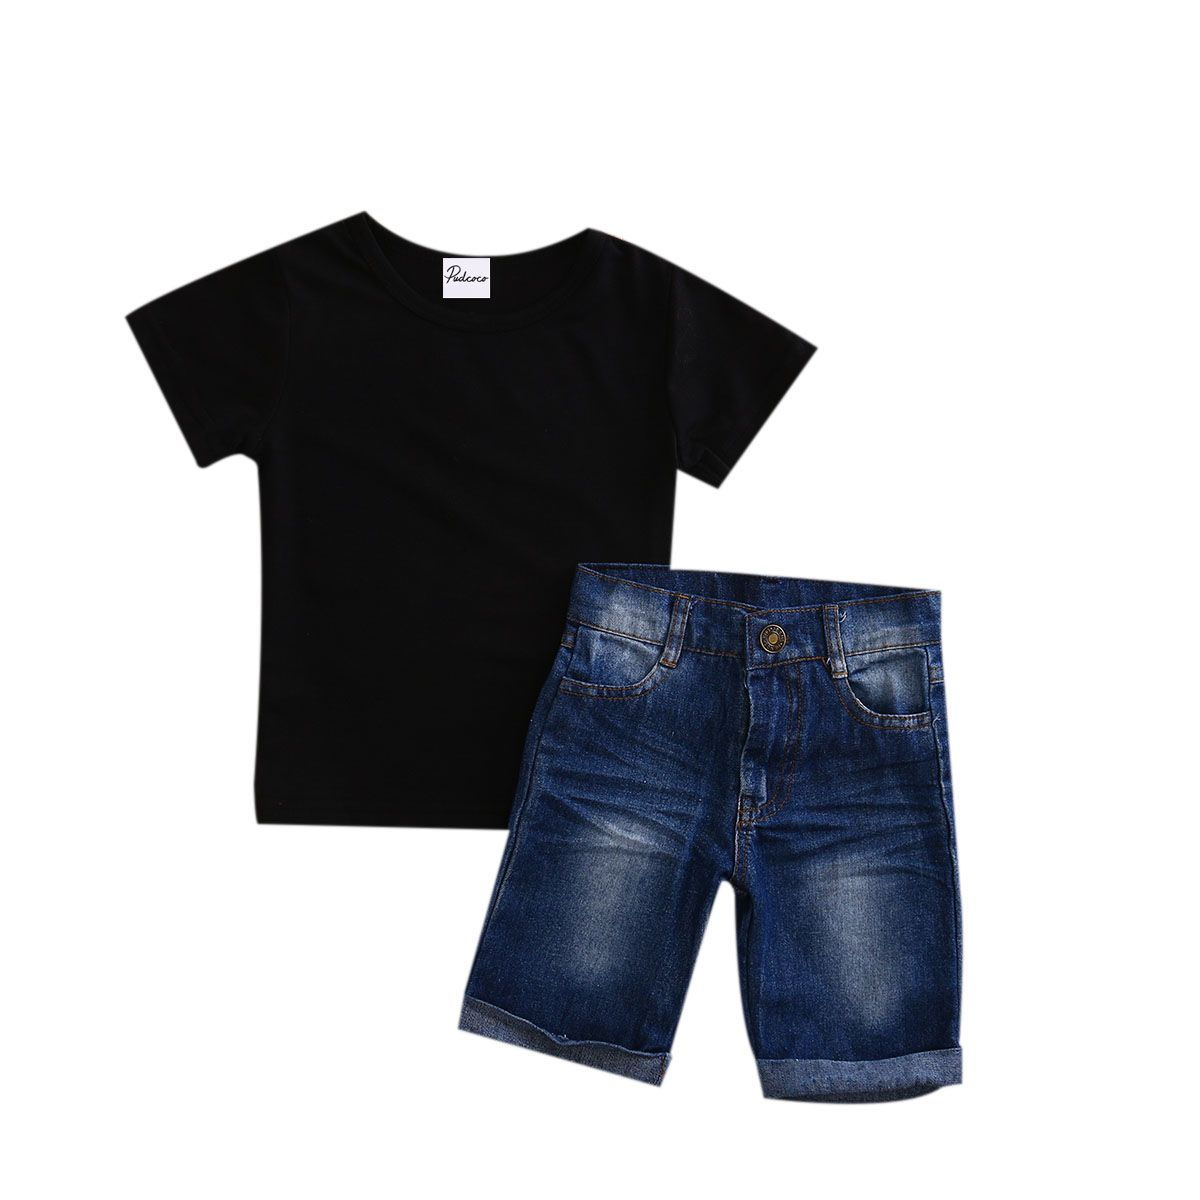 a55723c35829 Click to Buy    Hot sell 2PCS Summer Toddler Baby Boys Clothes Short Sleeve  Tops + Jeans Set Kids Clothing Outfits 0 to 5T  Affiliate